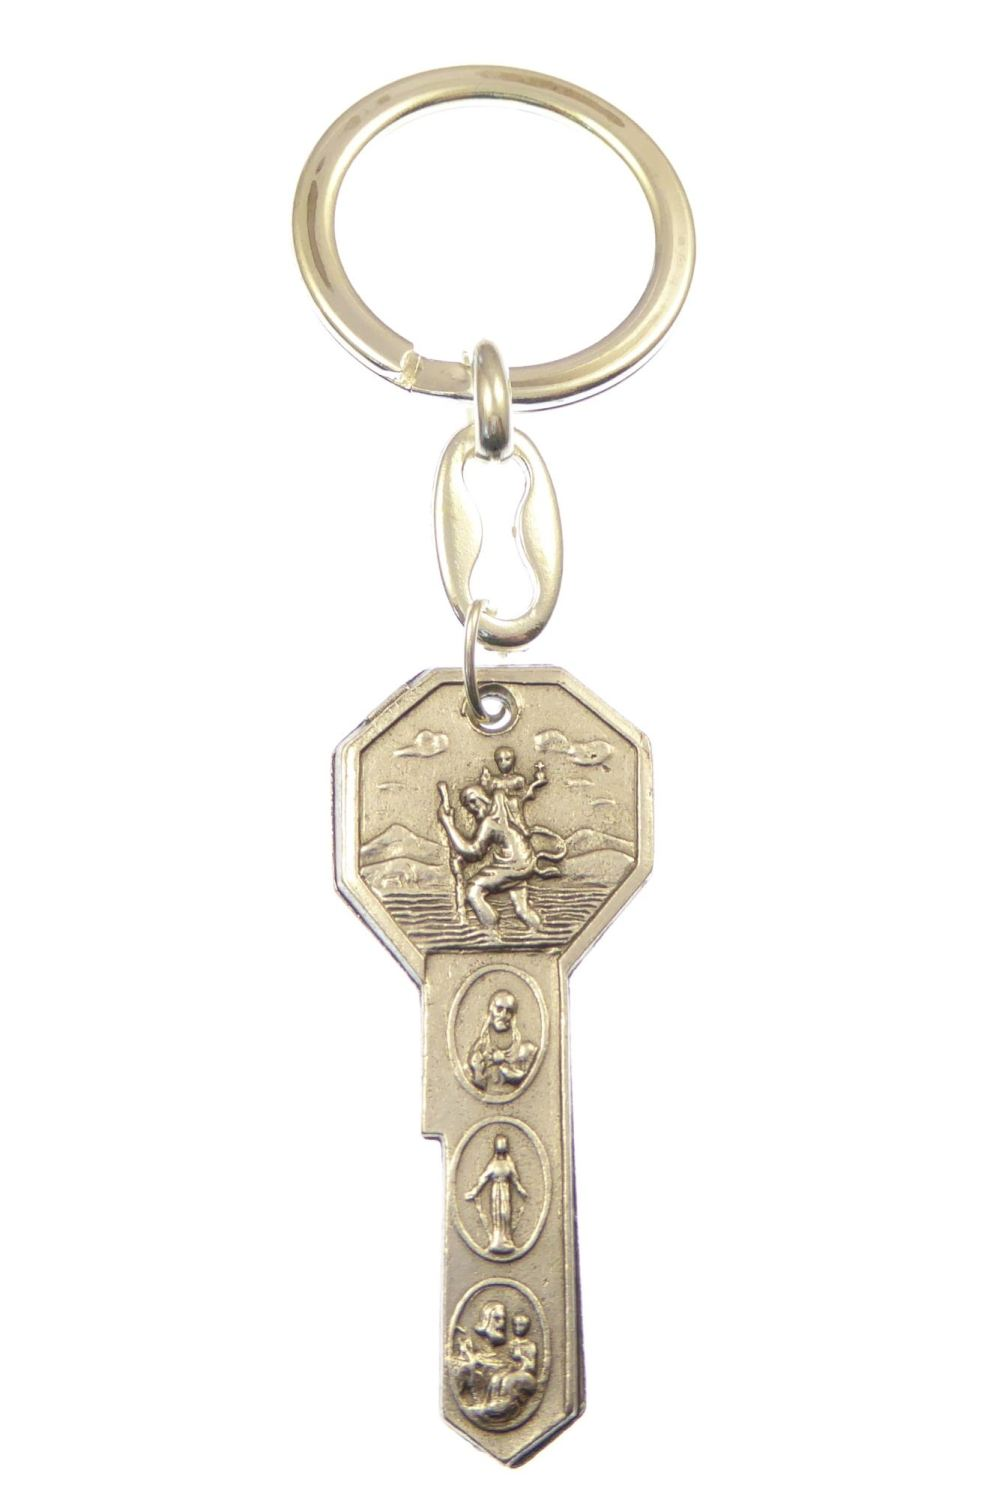 Keyring with Catholic images in key shape and silver metal